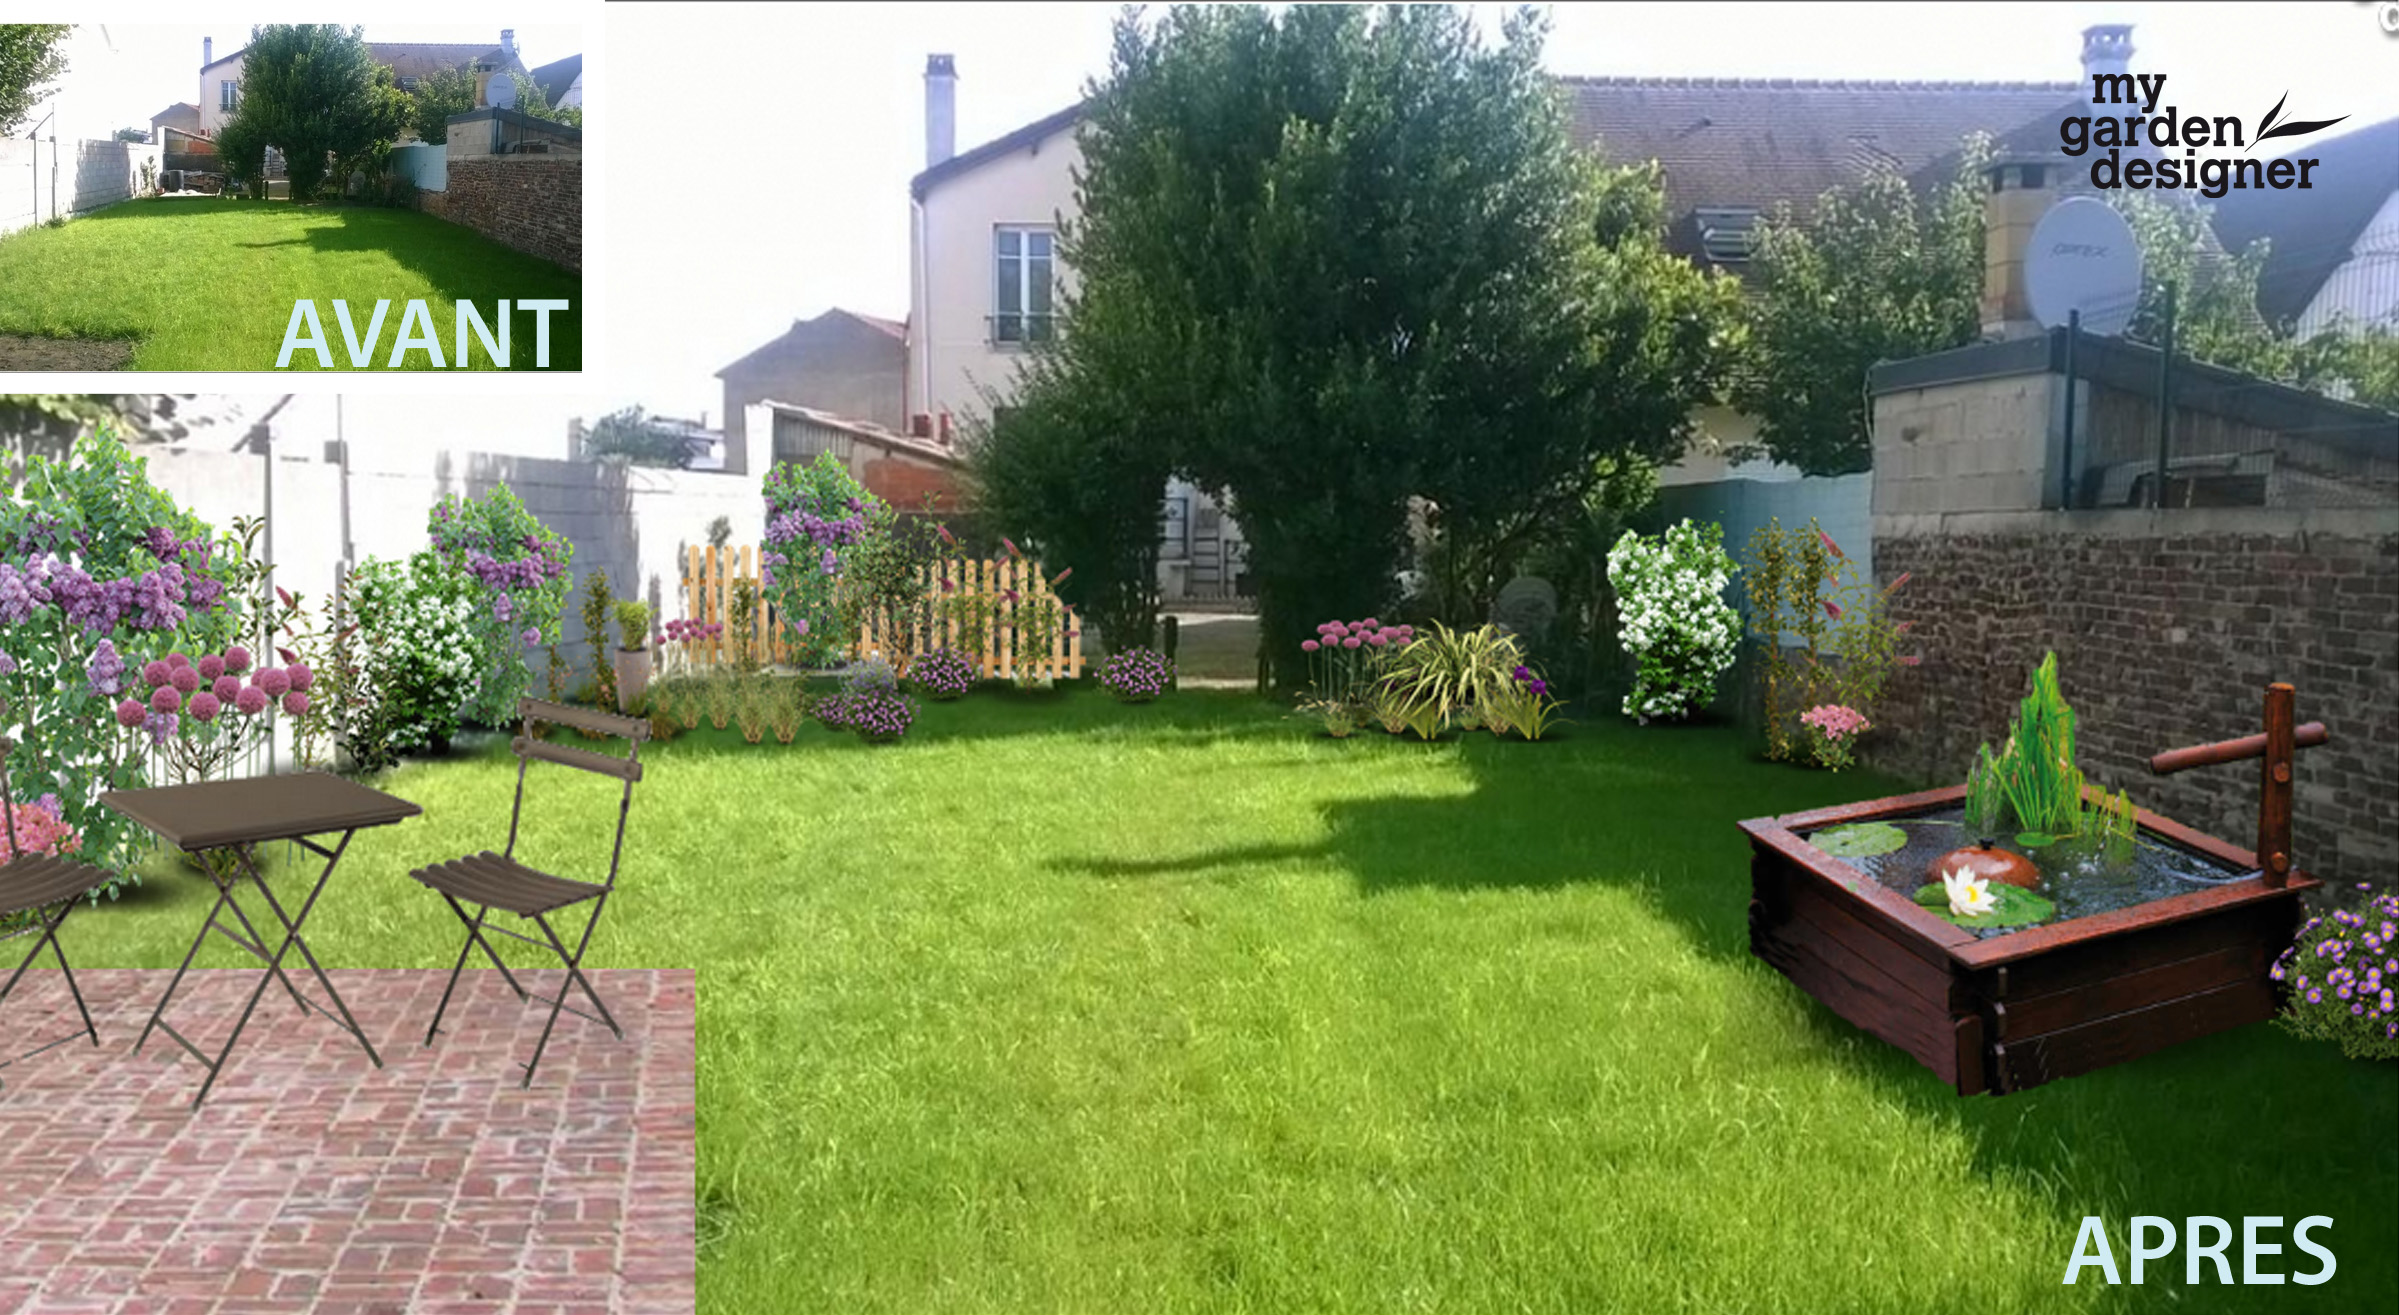 Am nager un jardin carr en ile de france monjardin for Idee d amenagement de jardin